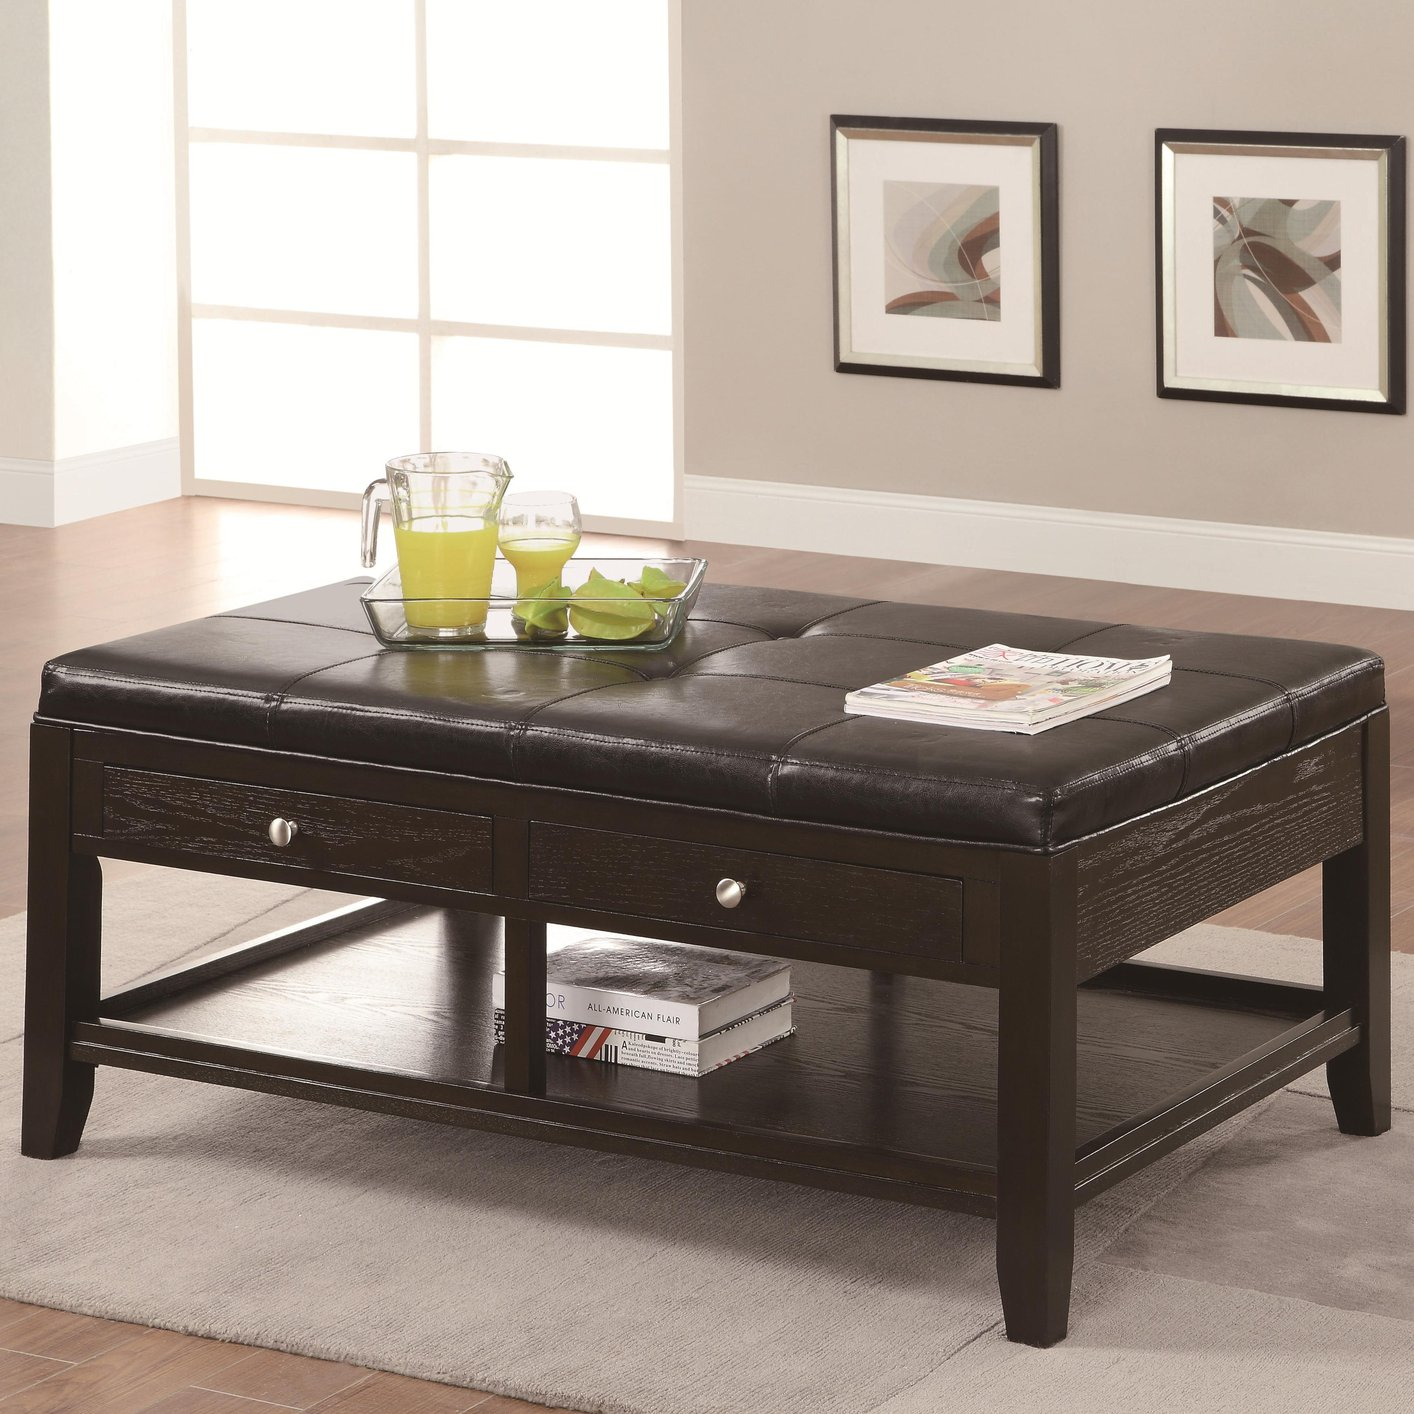 Coffee Table Leather Drawers: Coaster 702498 Brown Leather Coffee Table